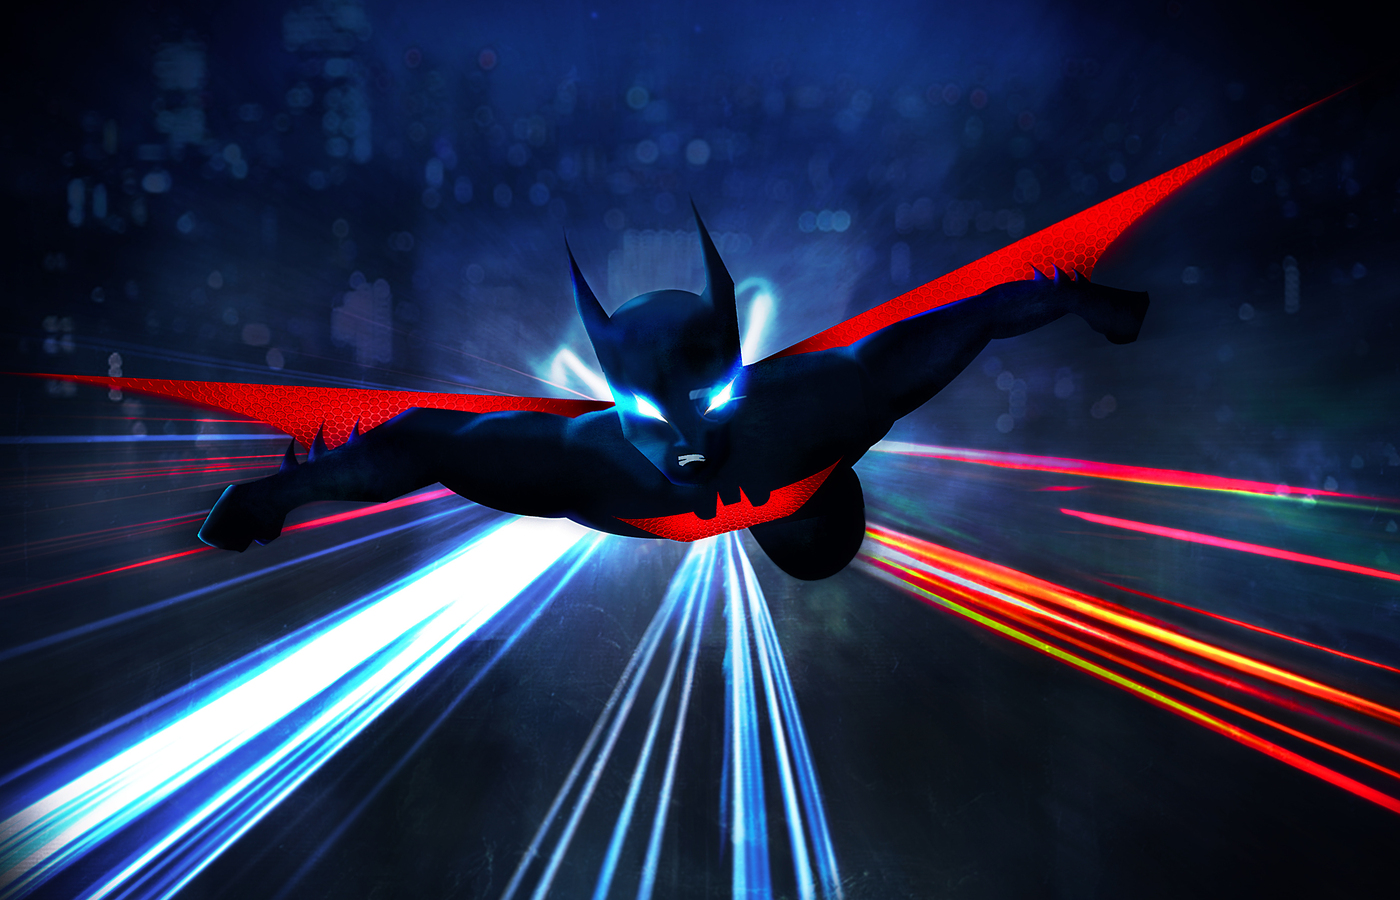 1400x900 Batman Beyond Hd Art 1400x900 Resolution Hd 4k Wallpapers